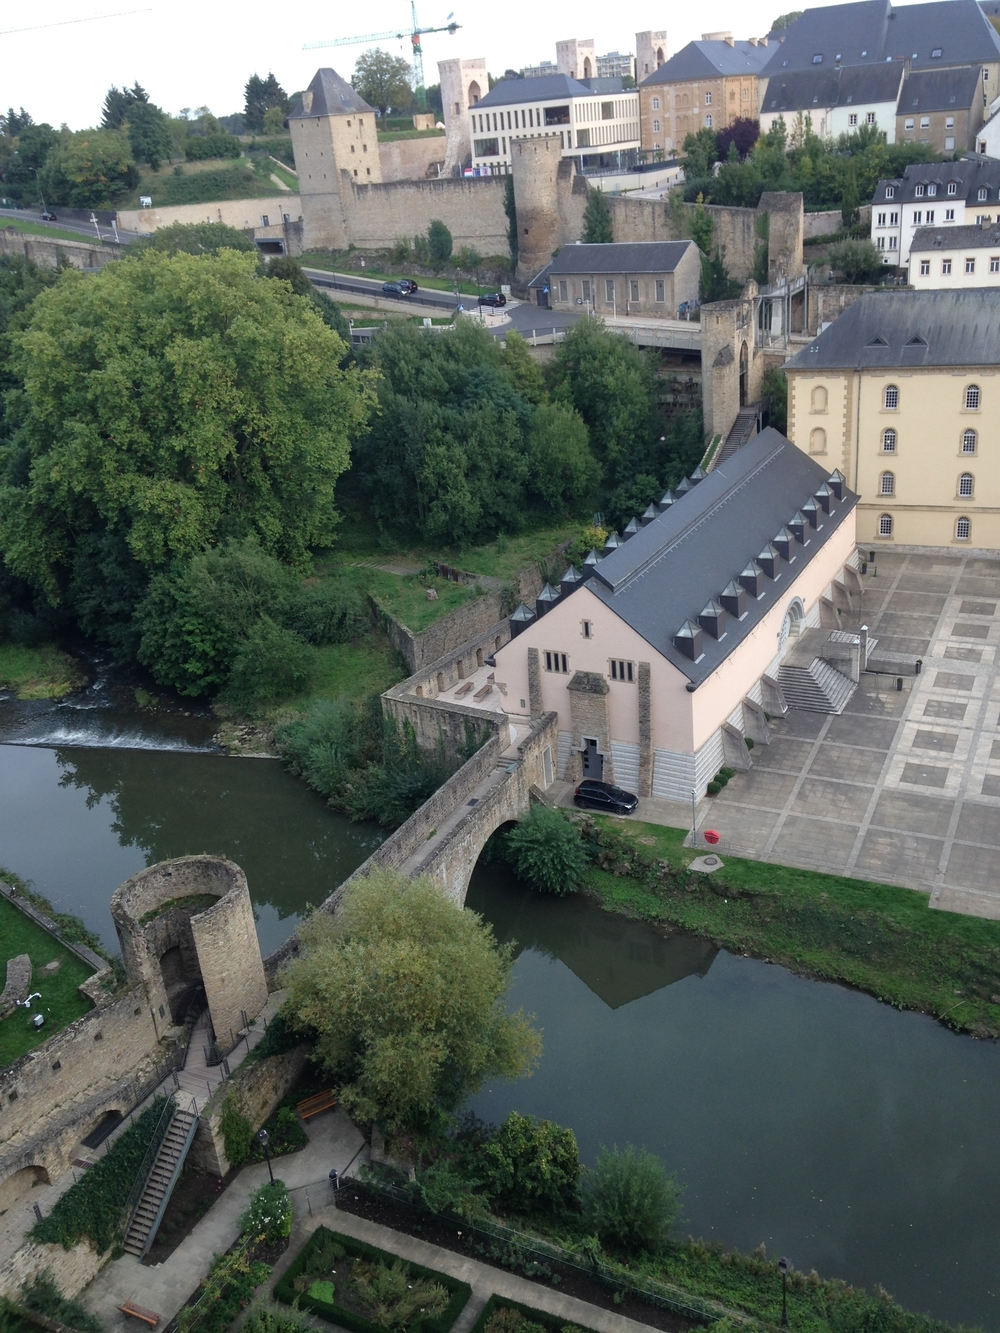 The medieval fortifications are just part of the fabric of the city. Yesterday morning my walk to the office went across this bridge and down the tower stairs. Nice embrasure placements, by the way. Good coverage of the river approach.